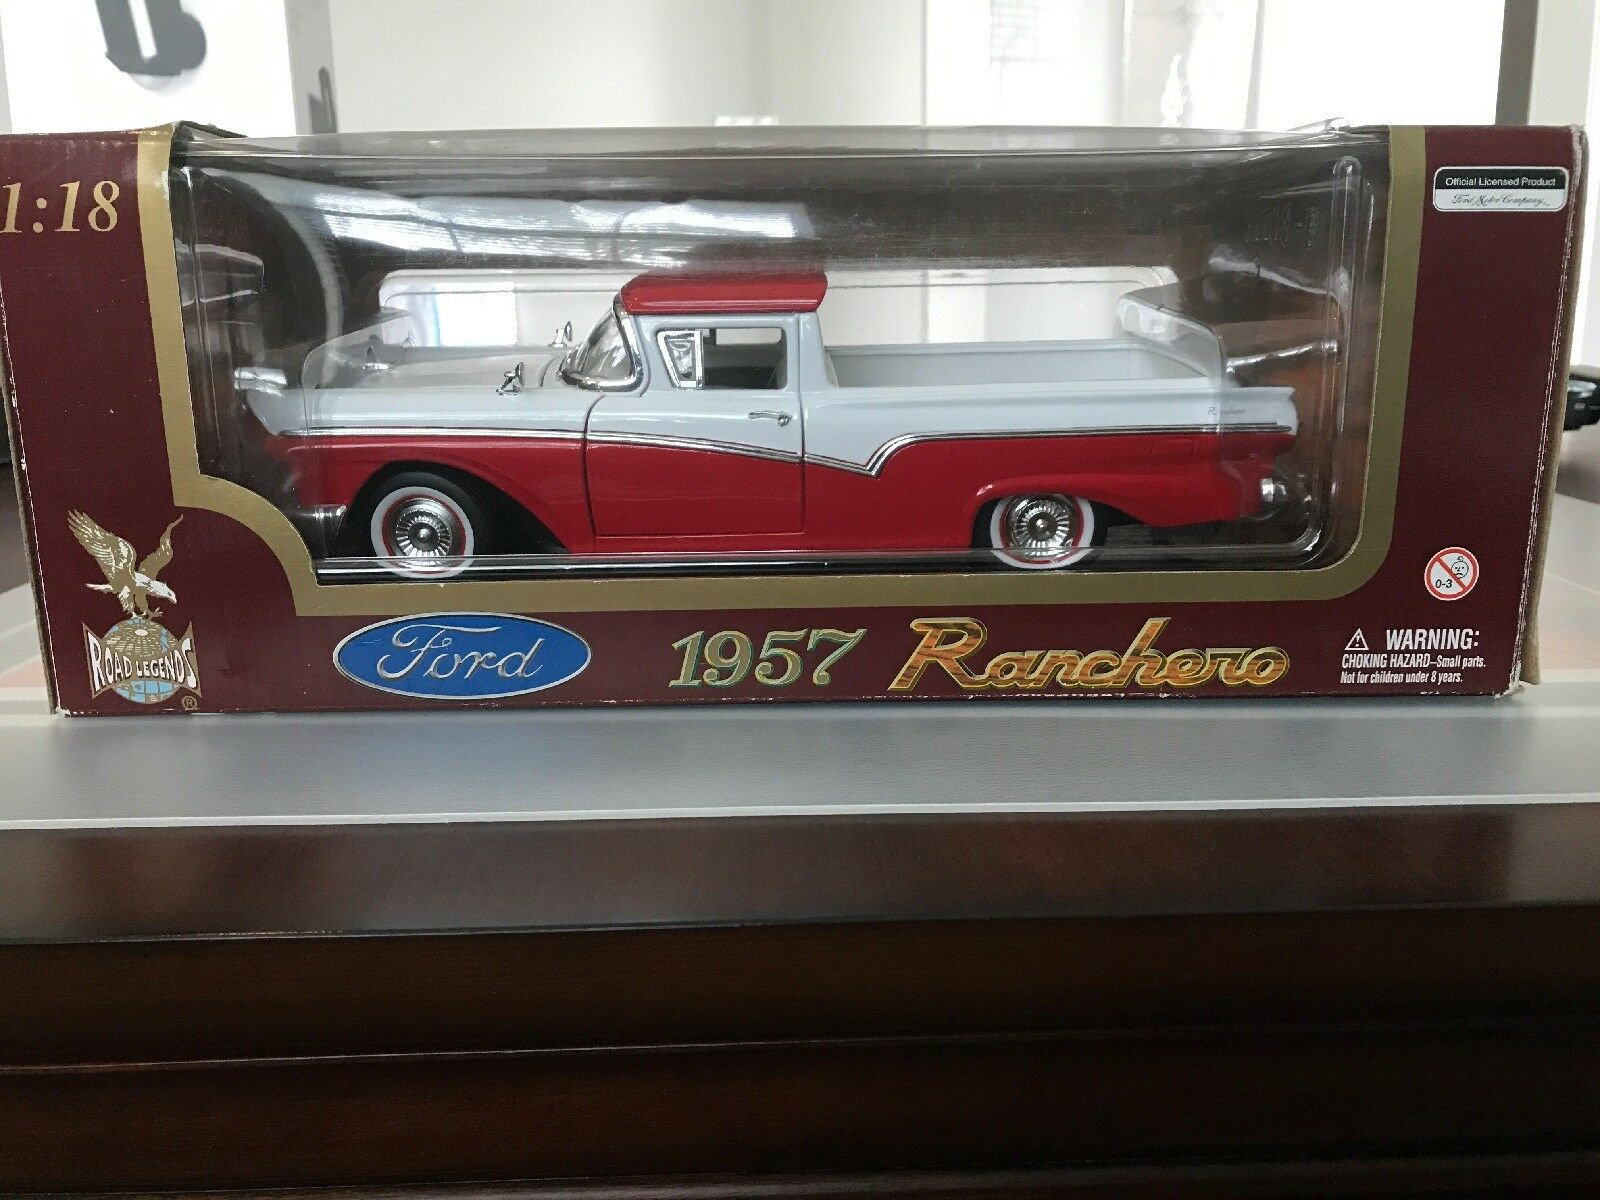 Road Legends 1957 Ford Ranchero rosso bianca 1 18 Diecast (C4)